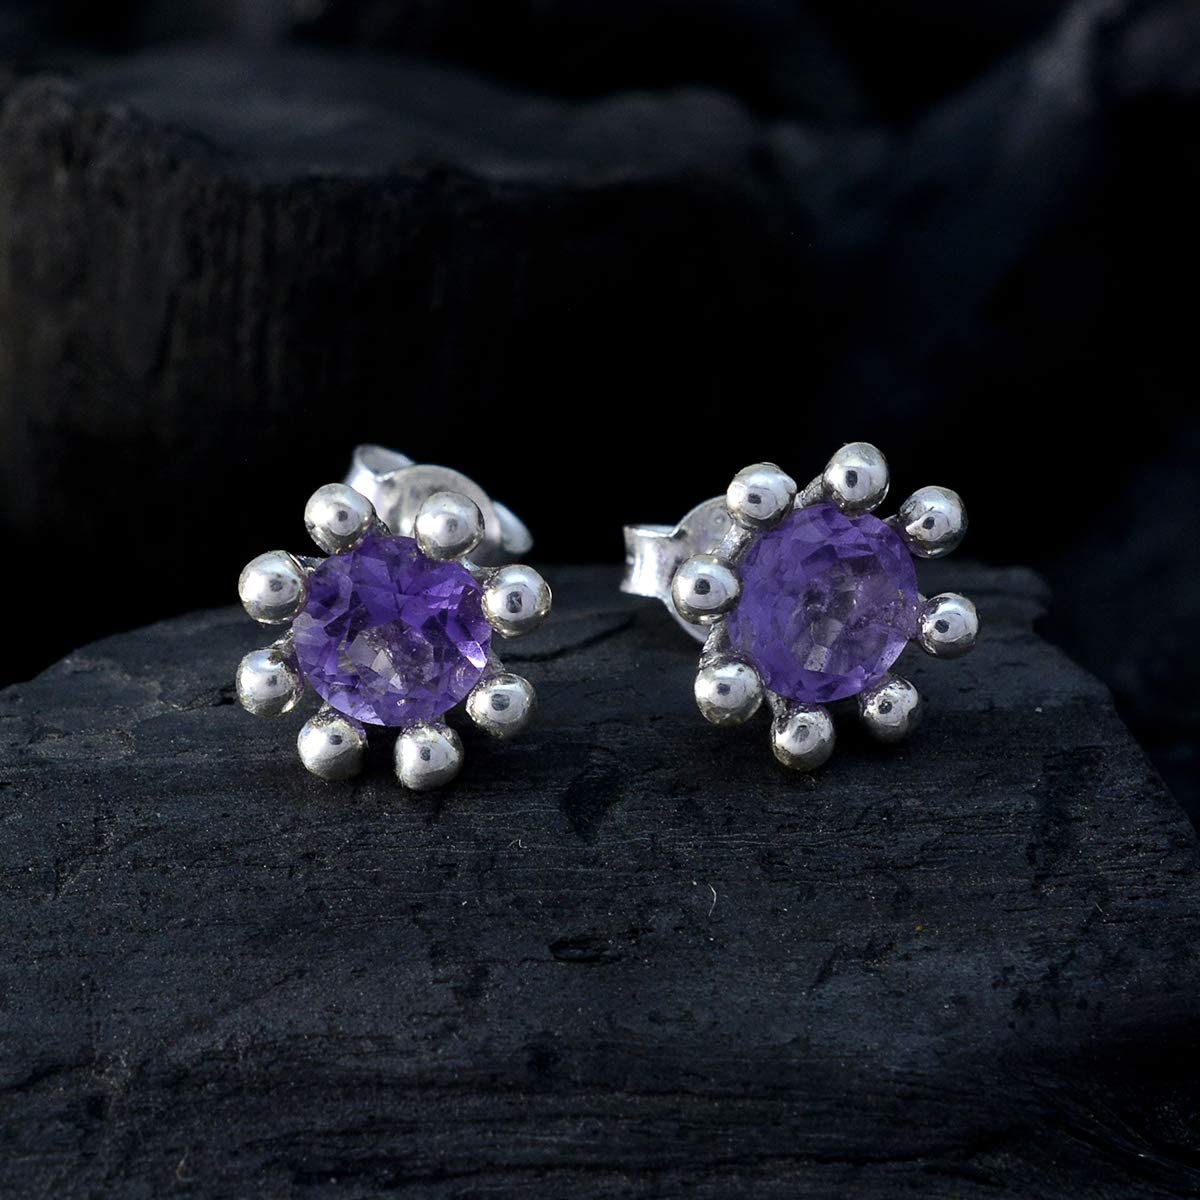 925 Silver Purple Amethyst Good Gemstones Earring RGPL Good Gemstones Faceted Amethyst Earring Jewellery Shops Gift for Anniversary Stacking Earring